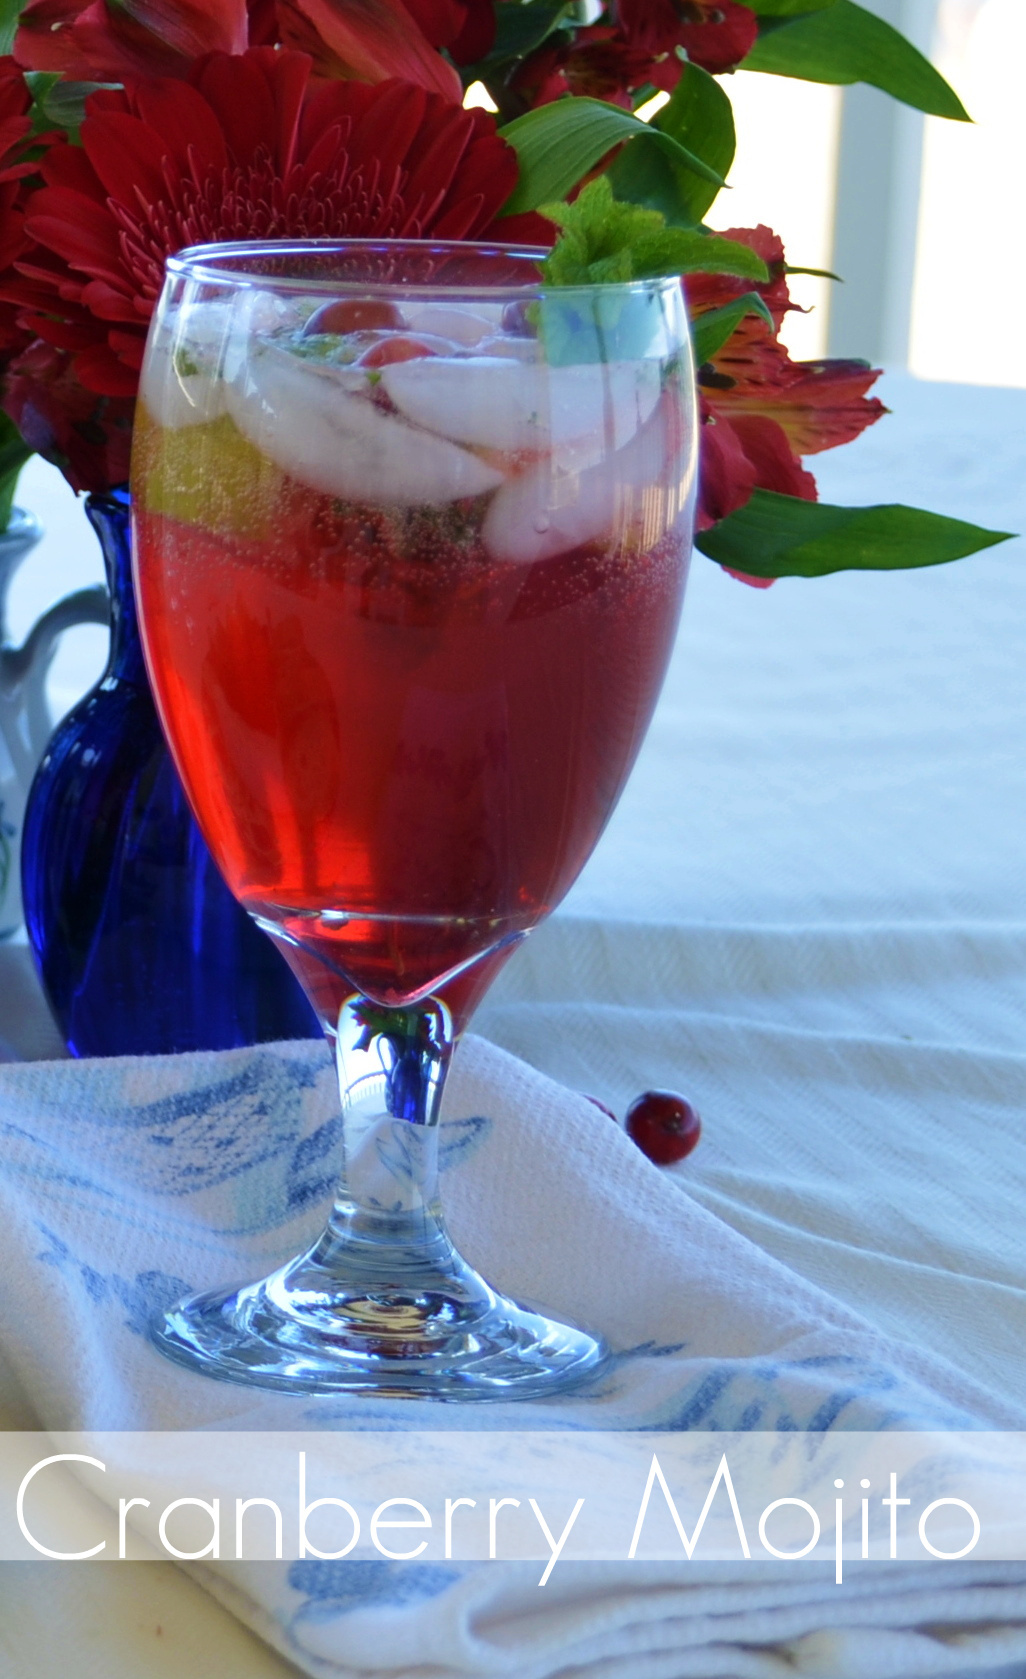 Simply Cranberry Cocktail & Hors d'oeuvre Recipes - Home ...